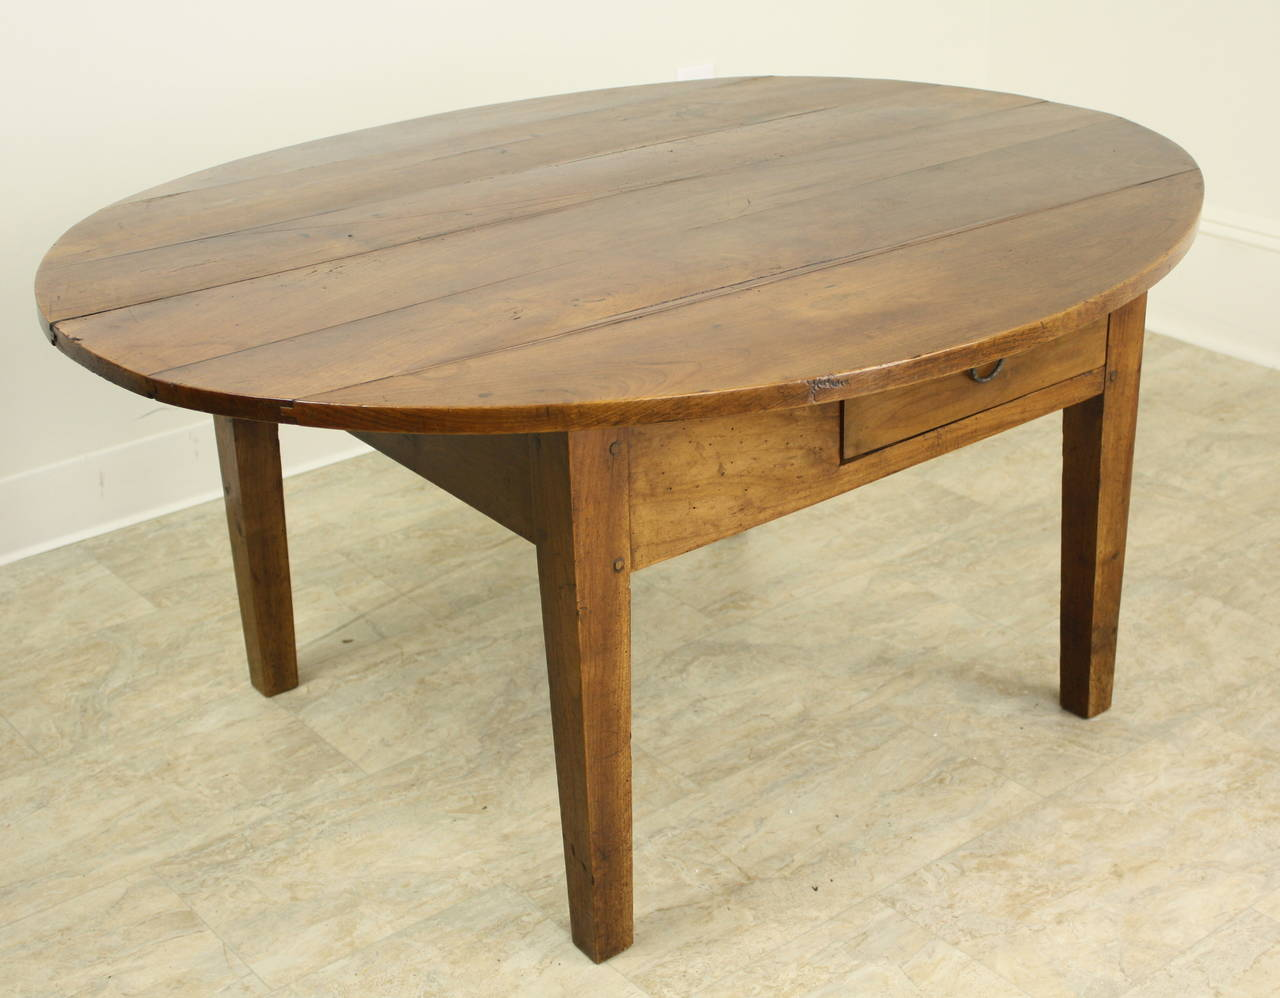 Antique oval cherry coffee table at 1stdibs for Oval cherry wood coffee table